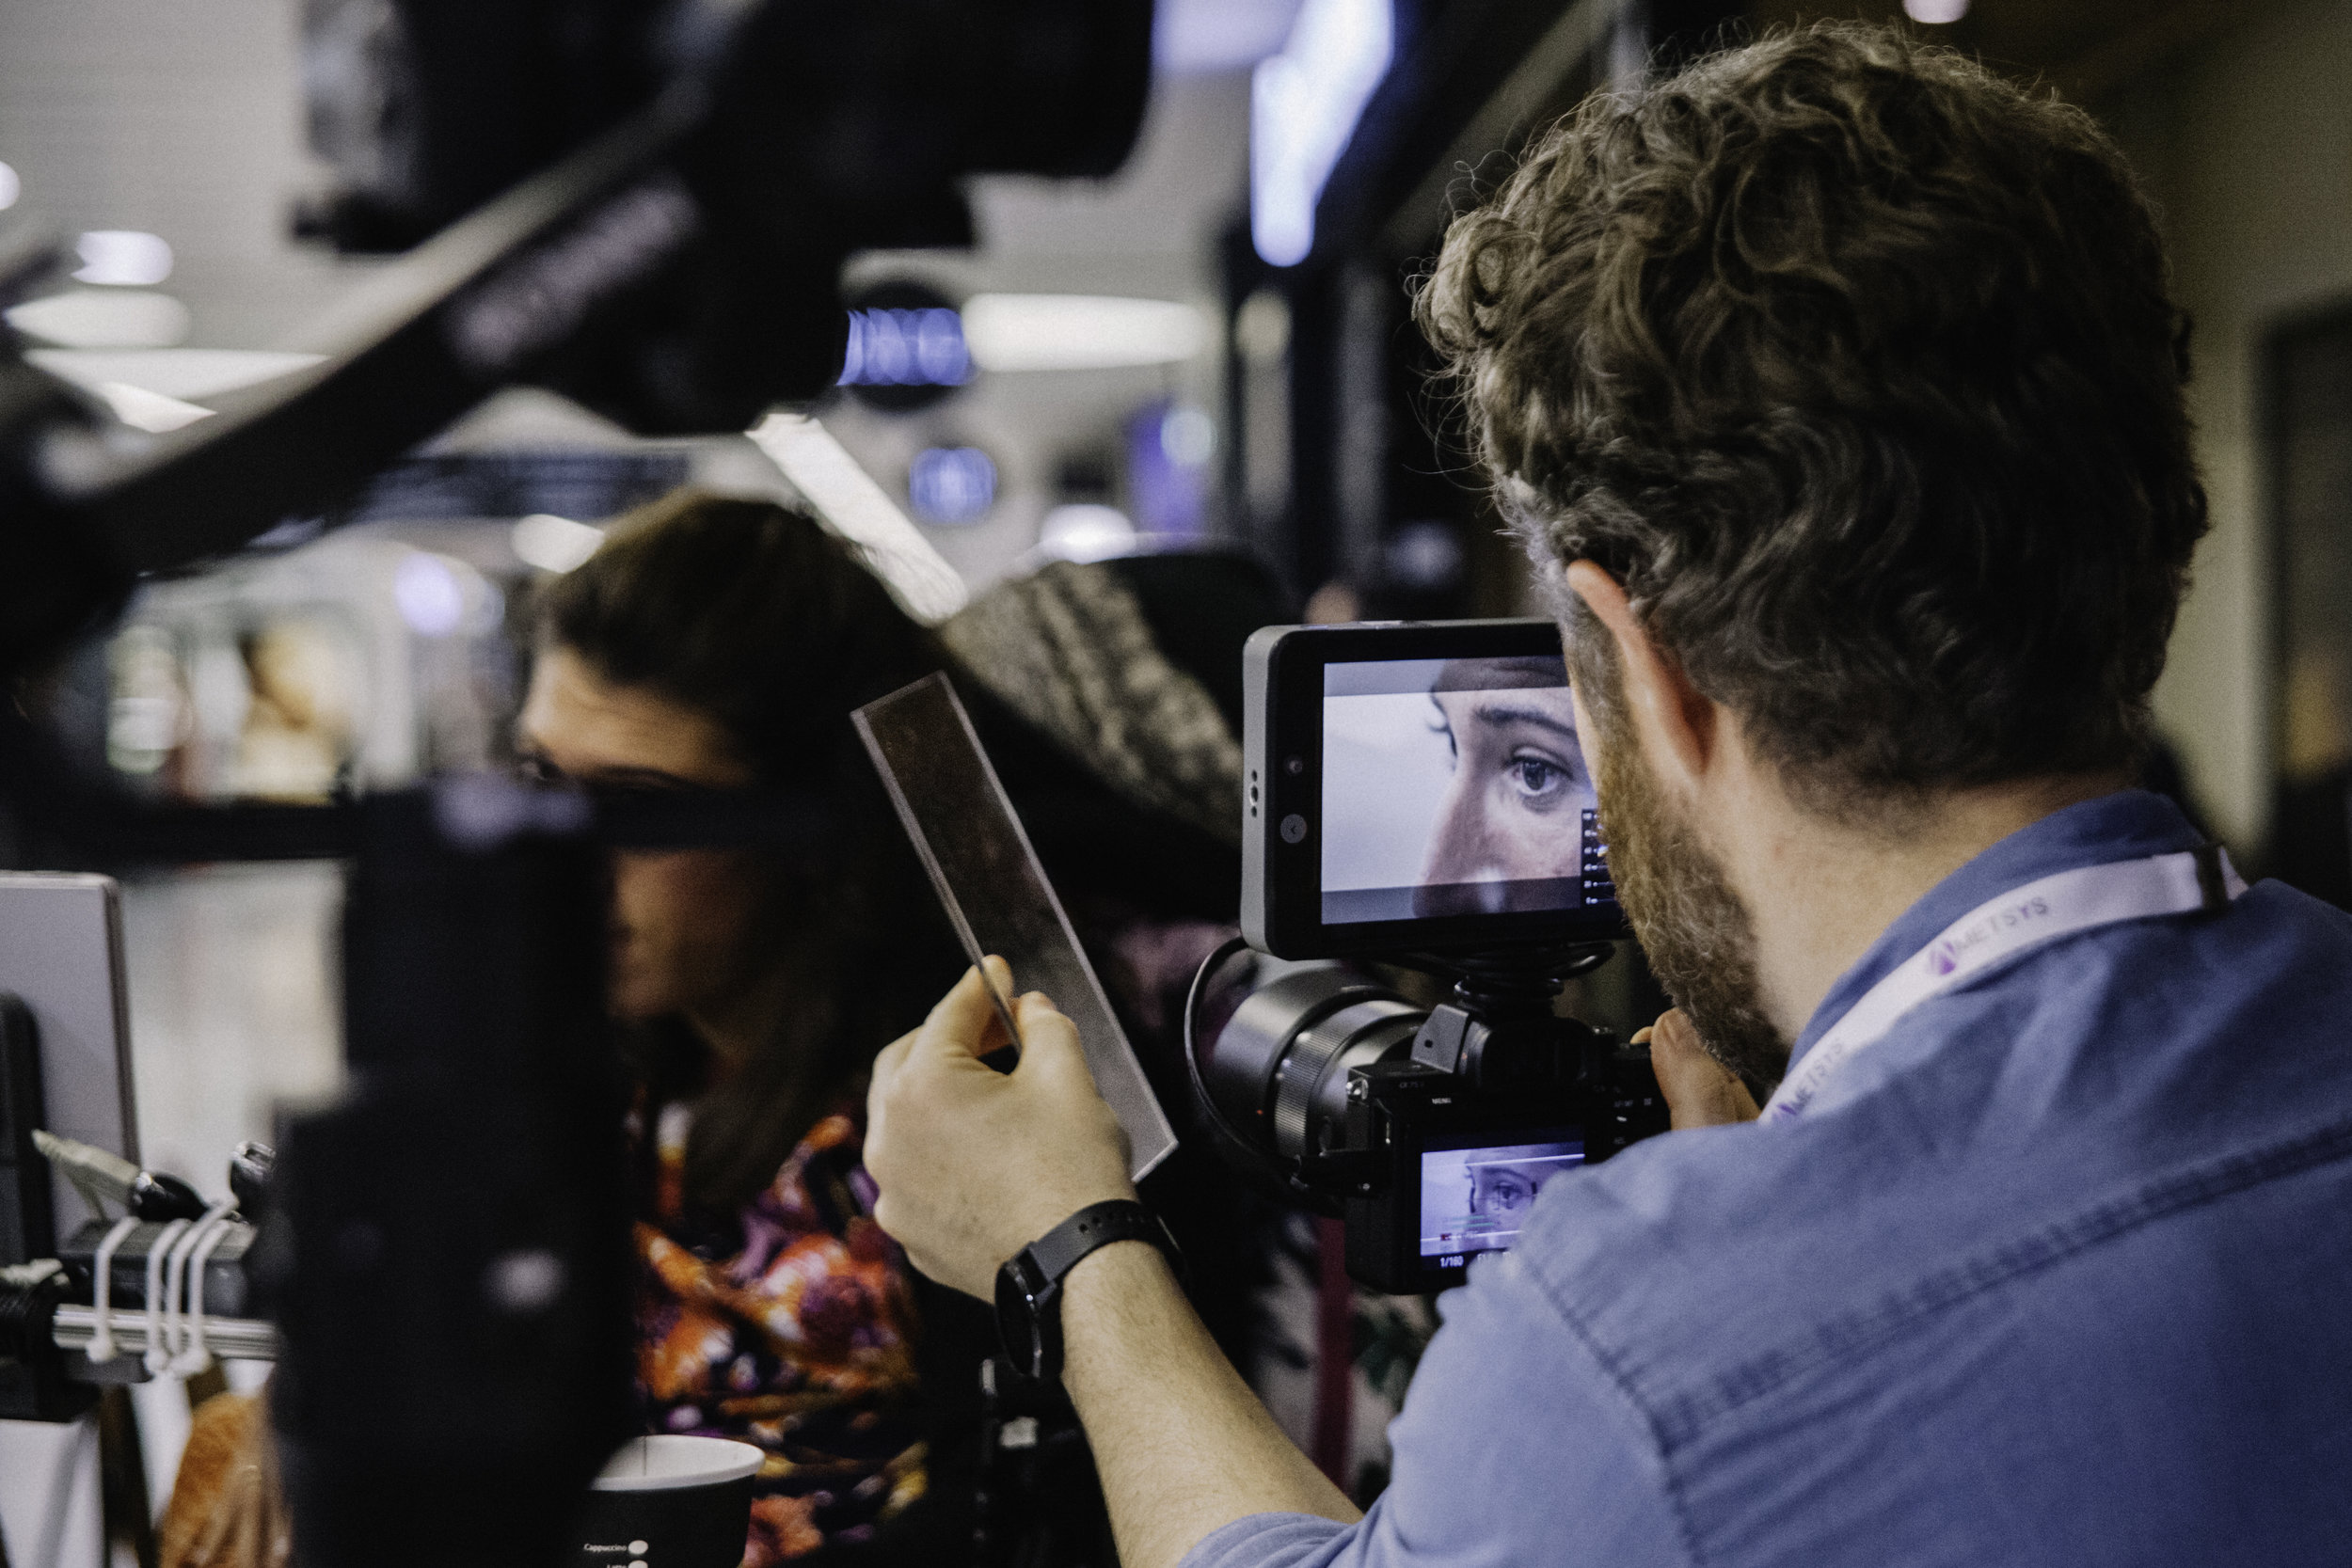 VIDEO PRODUCTION - Full pre-production, production and post production support